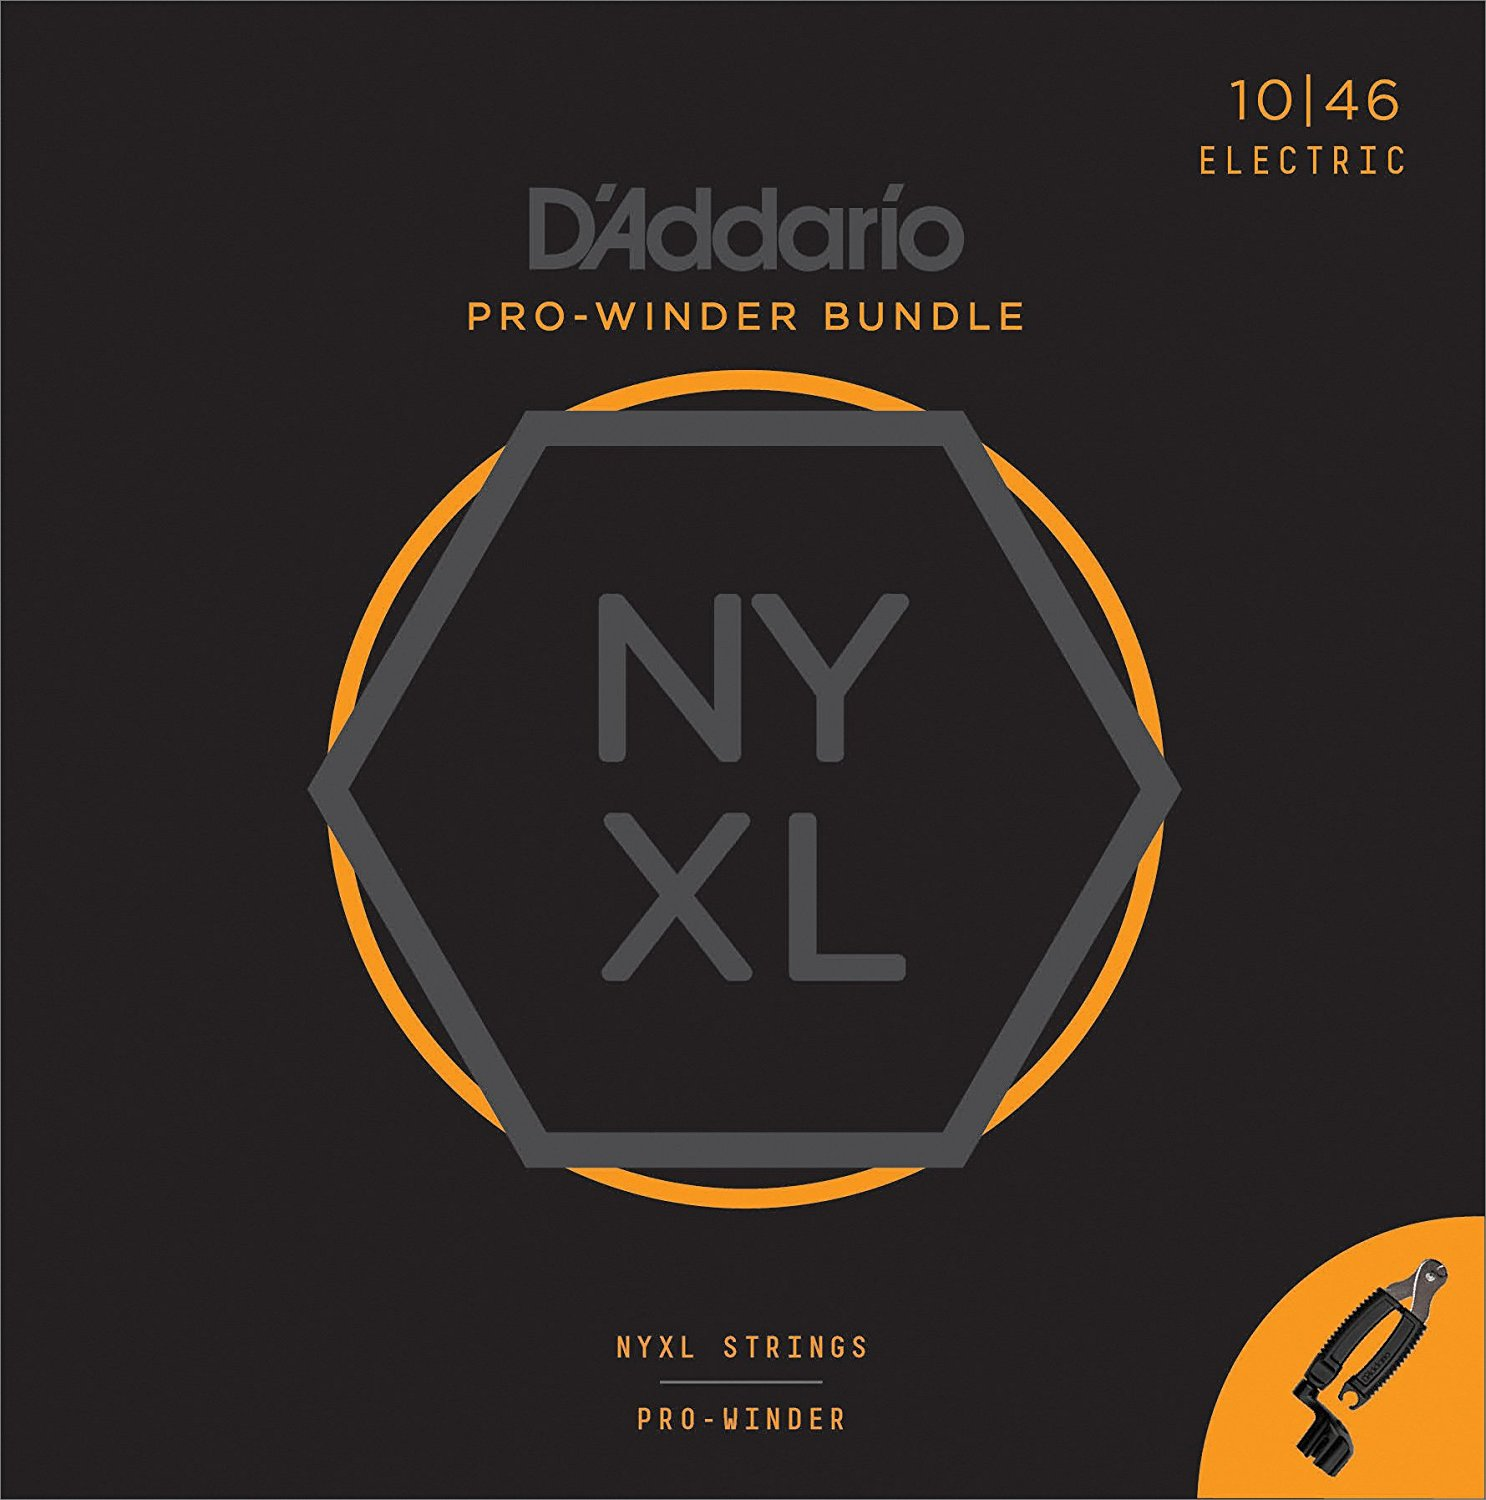 D'Addario NYXL1046 Nickel Wound Electric Guitar Strings, Regular Light & Pro-Winder Bundle